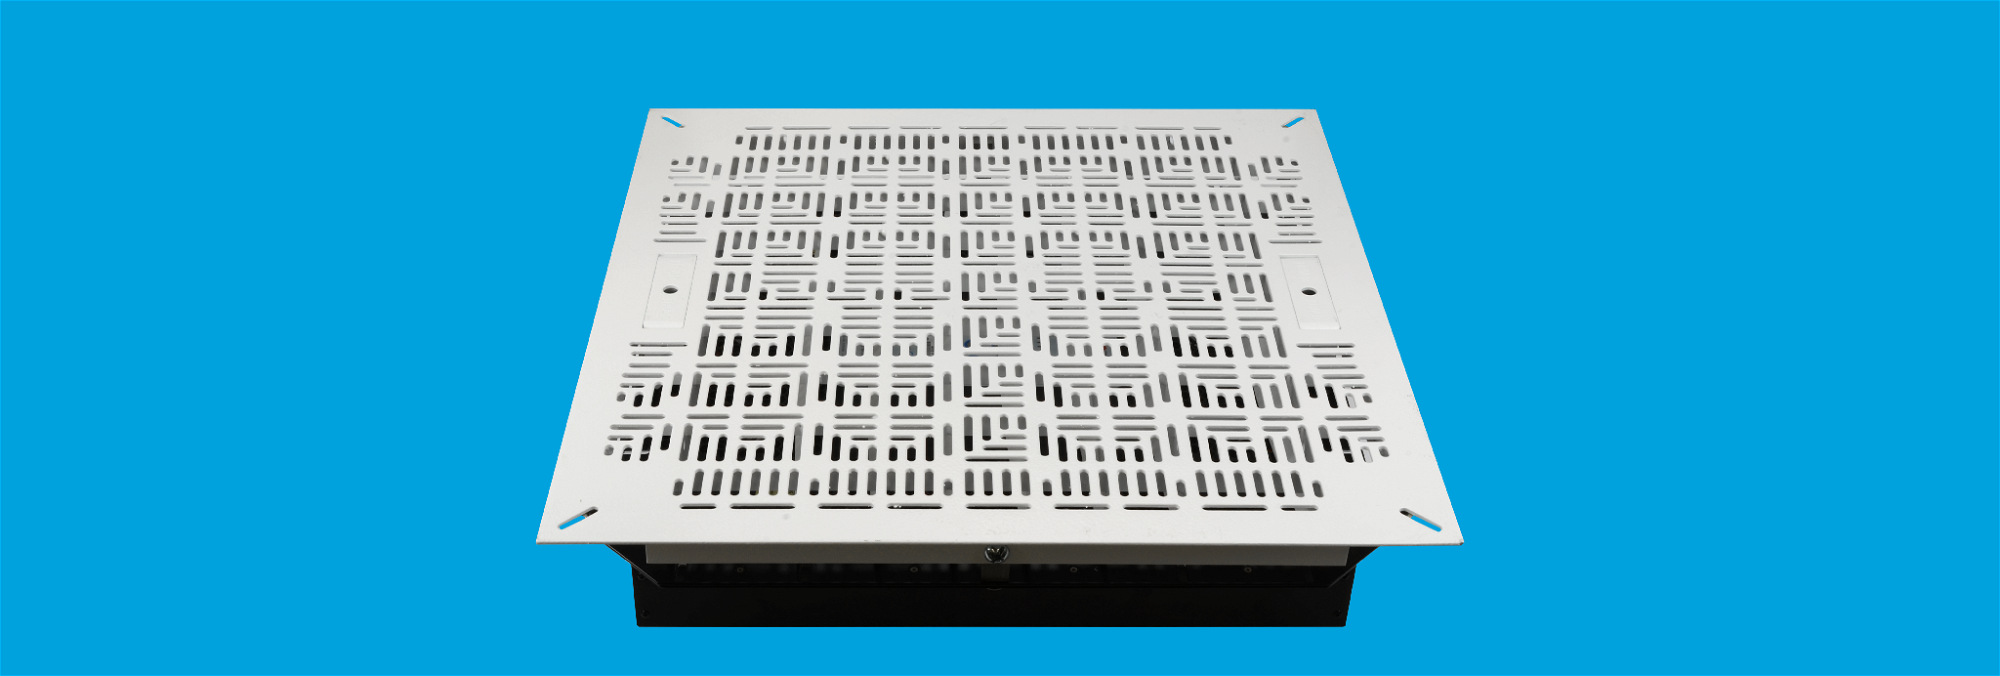 Airflow management tile for floors in data centers and computer rooms.